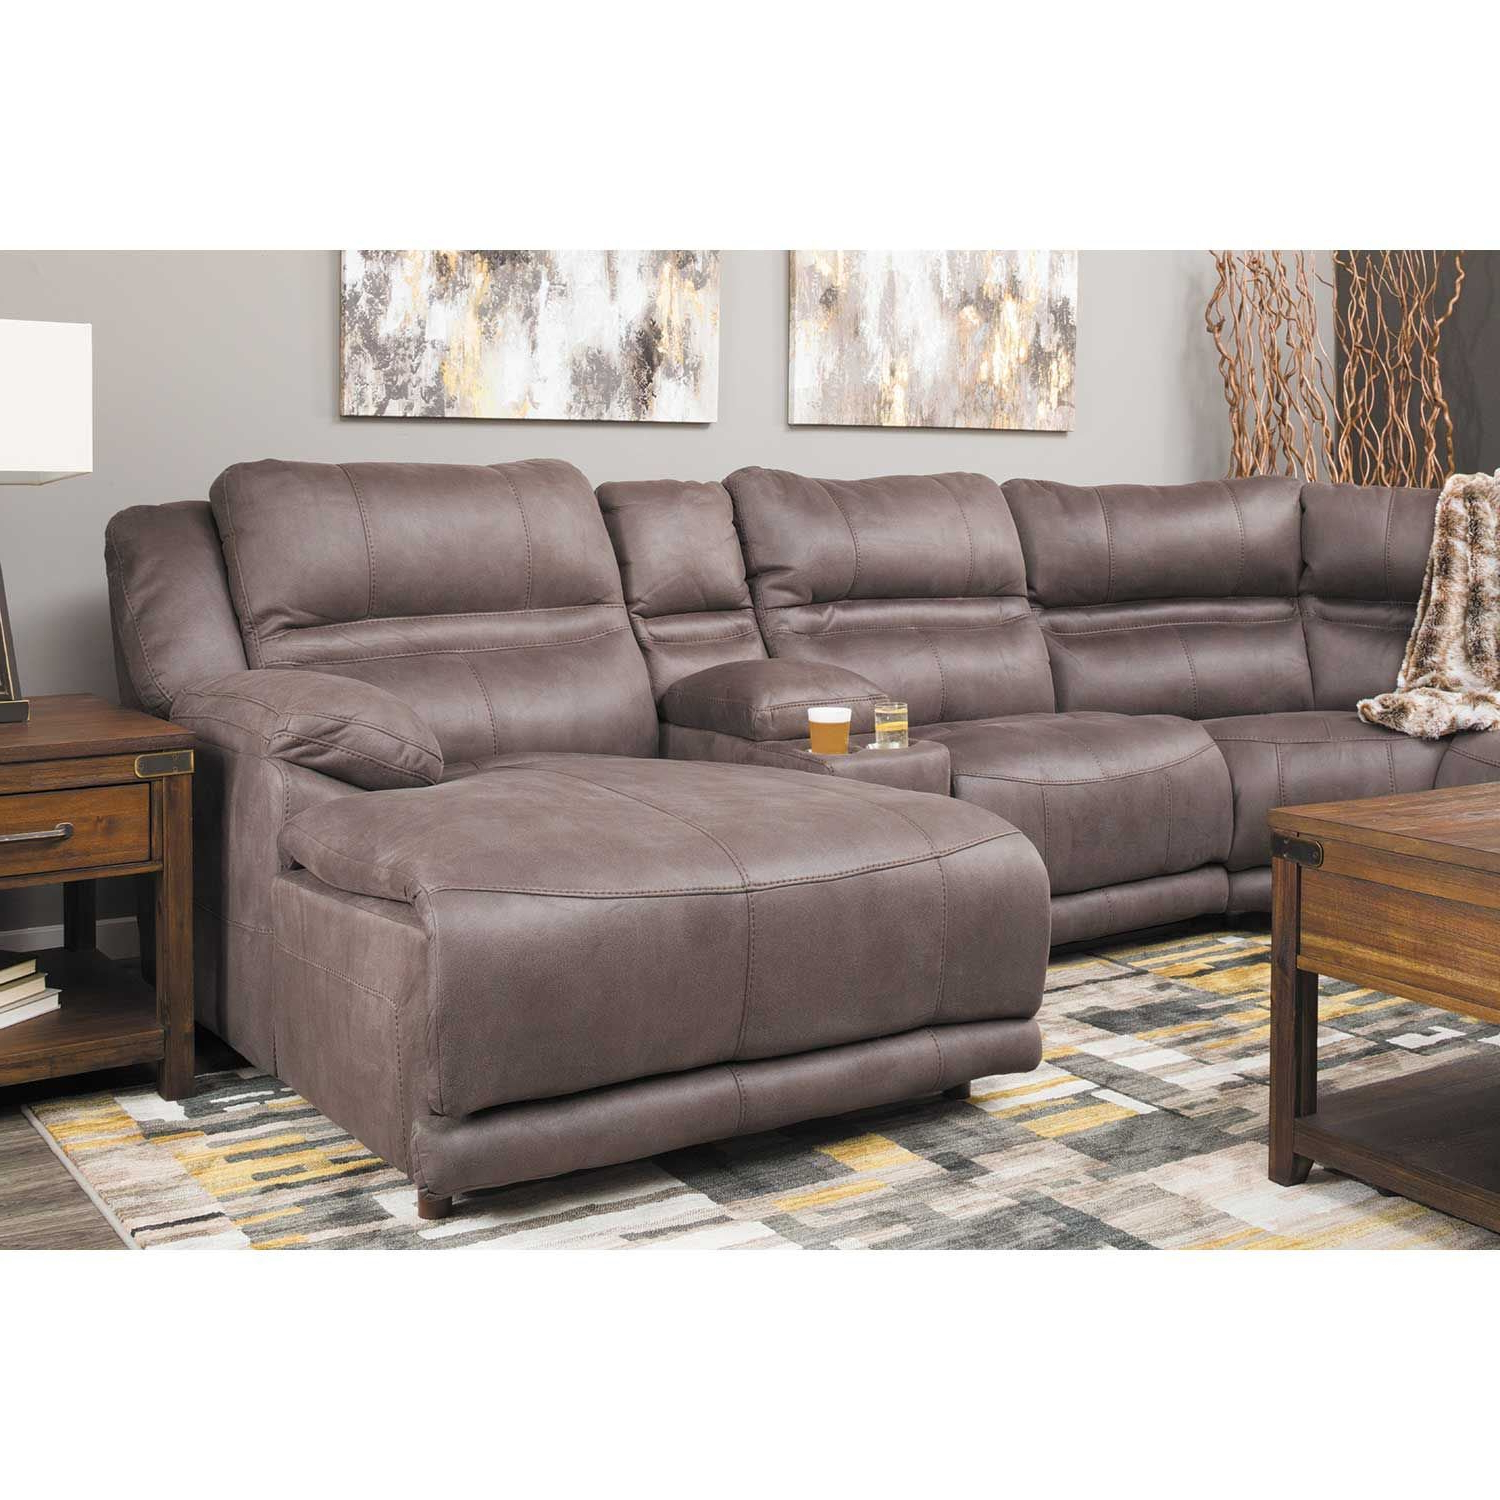 Jackson 6 Piece Power Reclining Sectionals With  Sleeper Regarding Trendy Braxton 6 Piece Power Reclining Sectional With Adjustable Headrest (View 7 of 20)